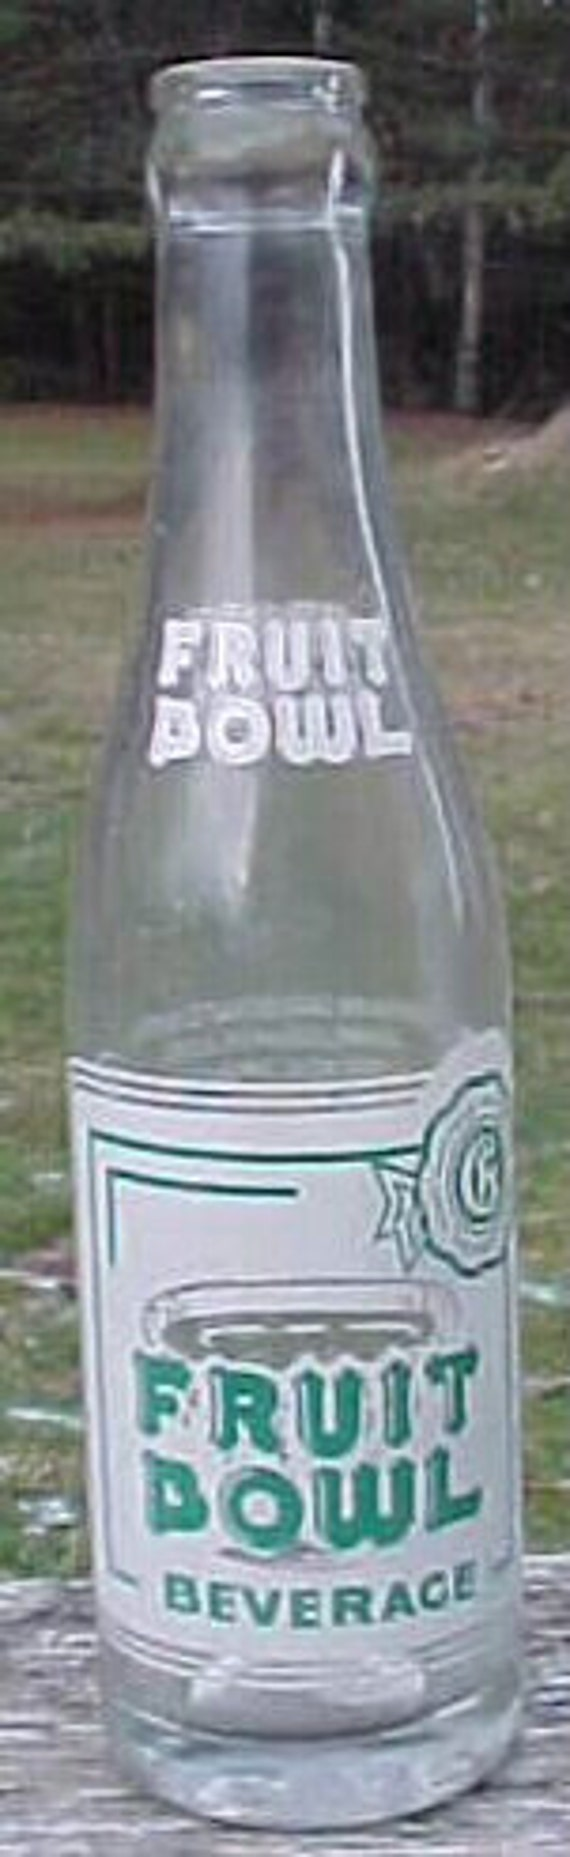 1963 Fruit Bowl Beverage Barr's Better Beverages Hardwick Vermont 7 Fl. Oz. , Clear ACL Painted Label Crown Top Soda Bottle